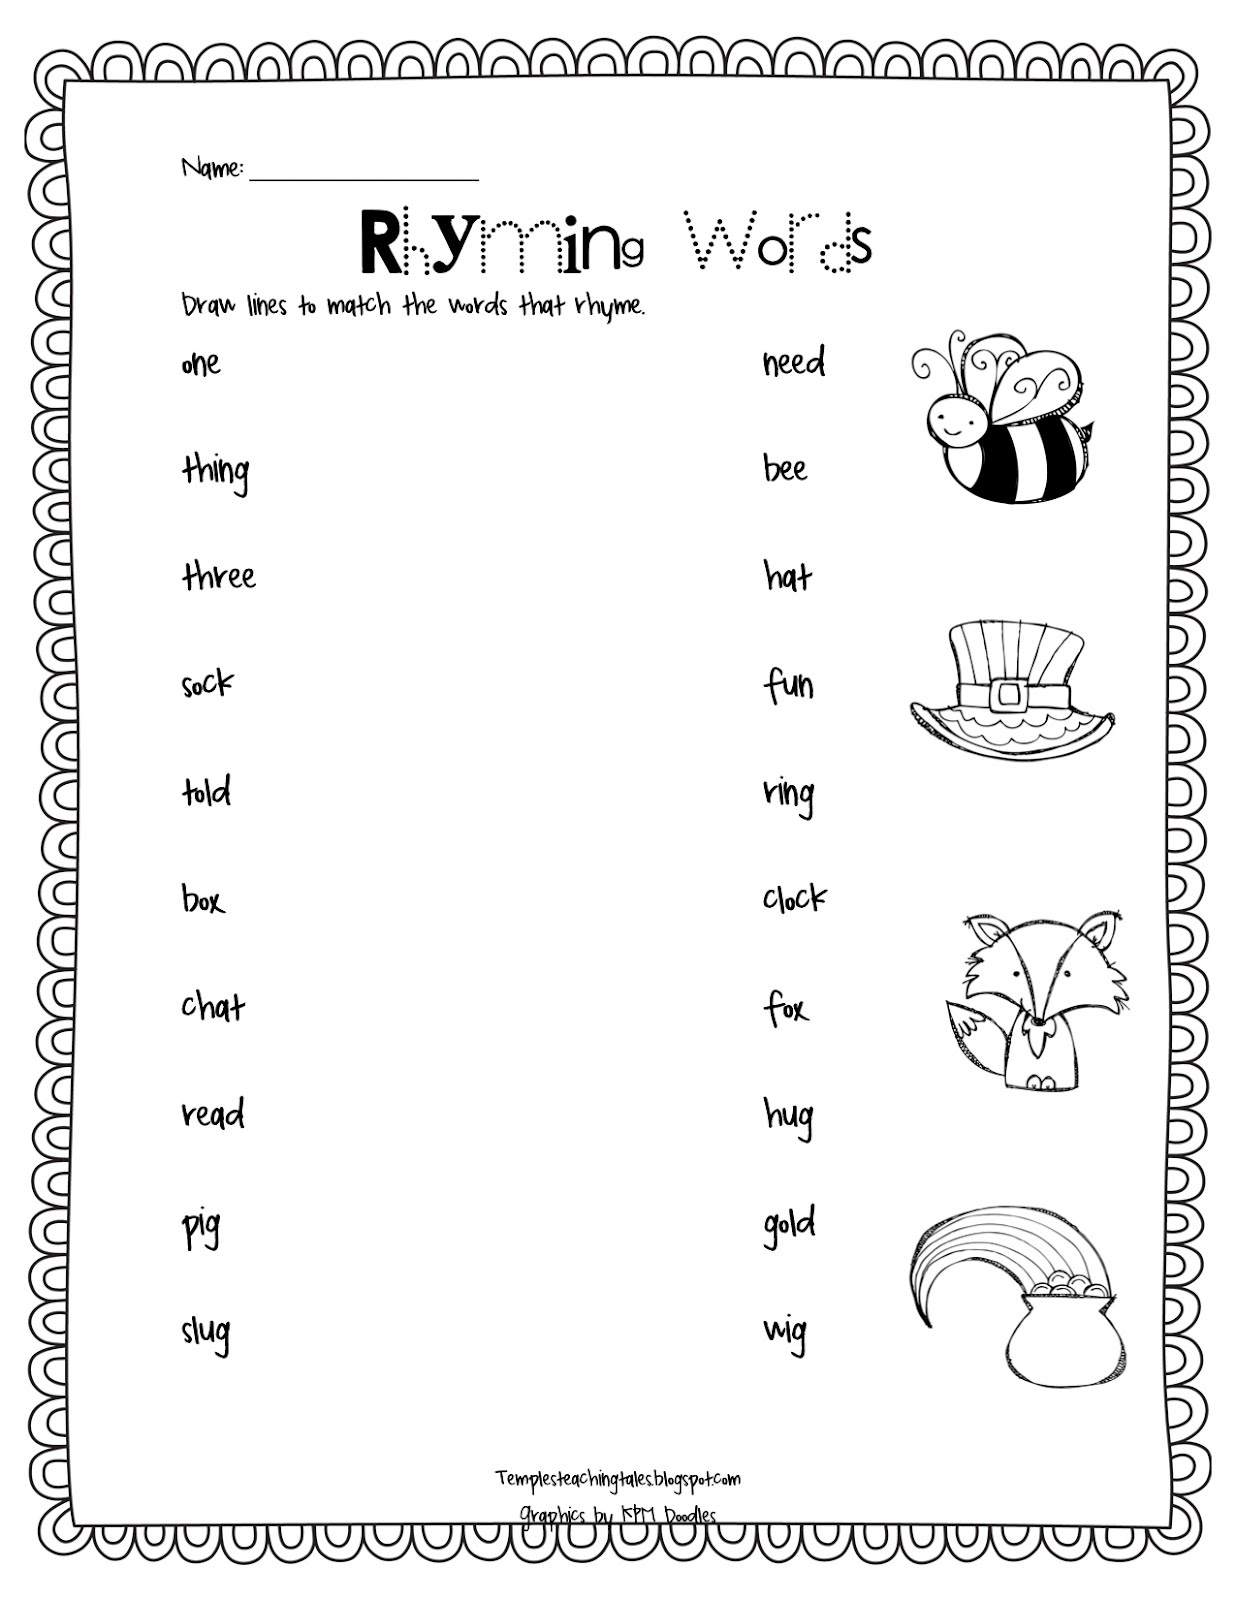 Temple S Teaching Tales Above And Below Freebie And Rhyming Words